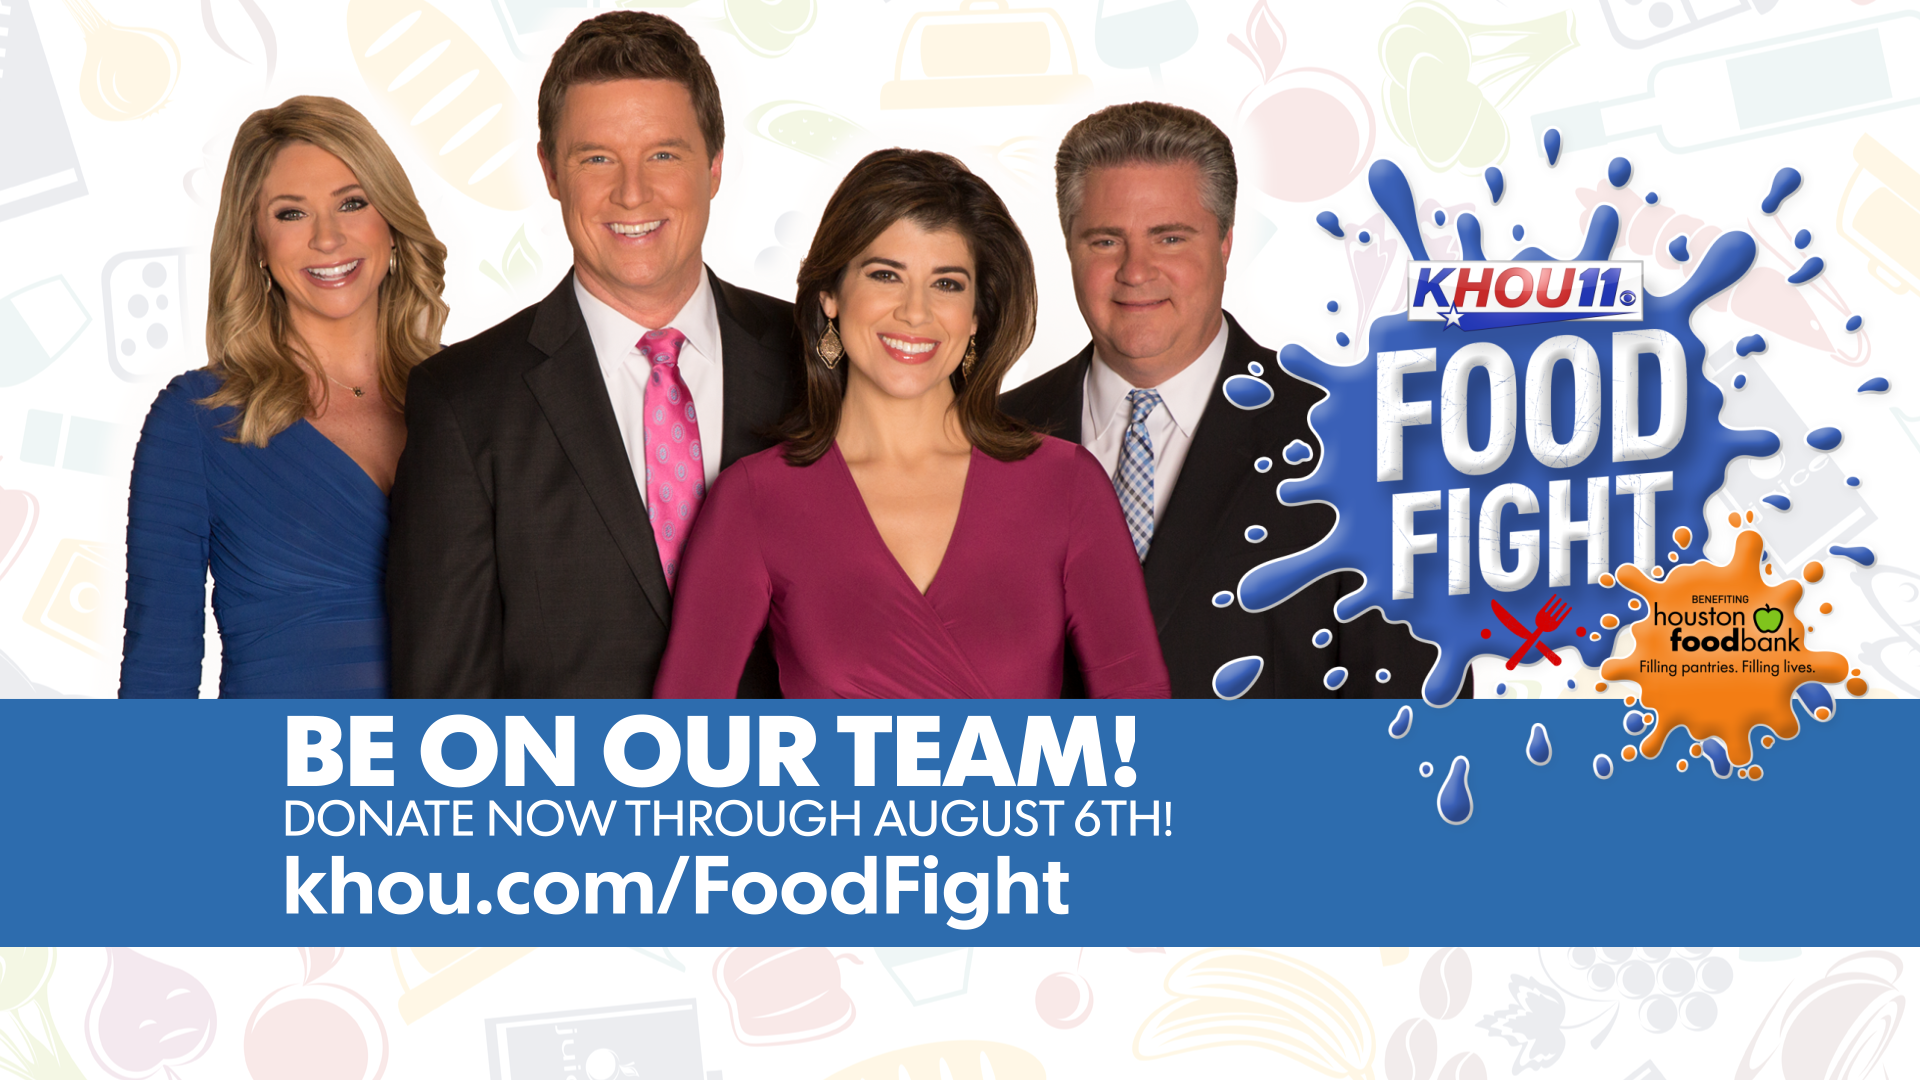 2017 KHOU 11 Food Fight